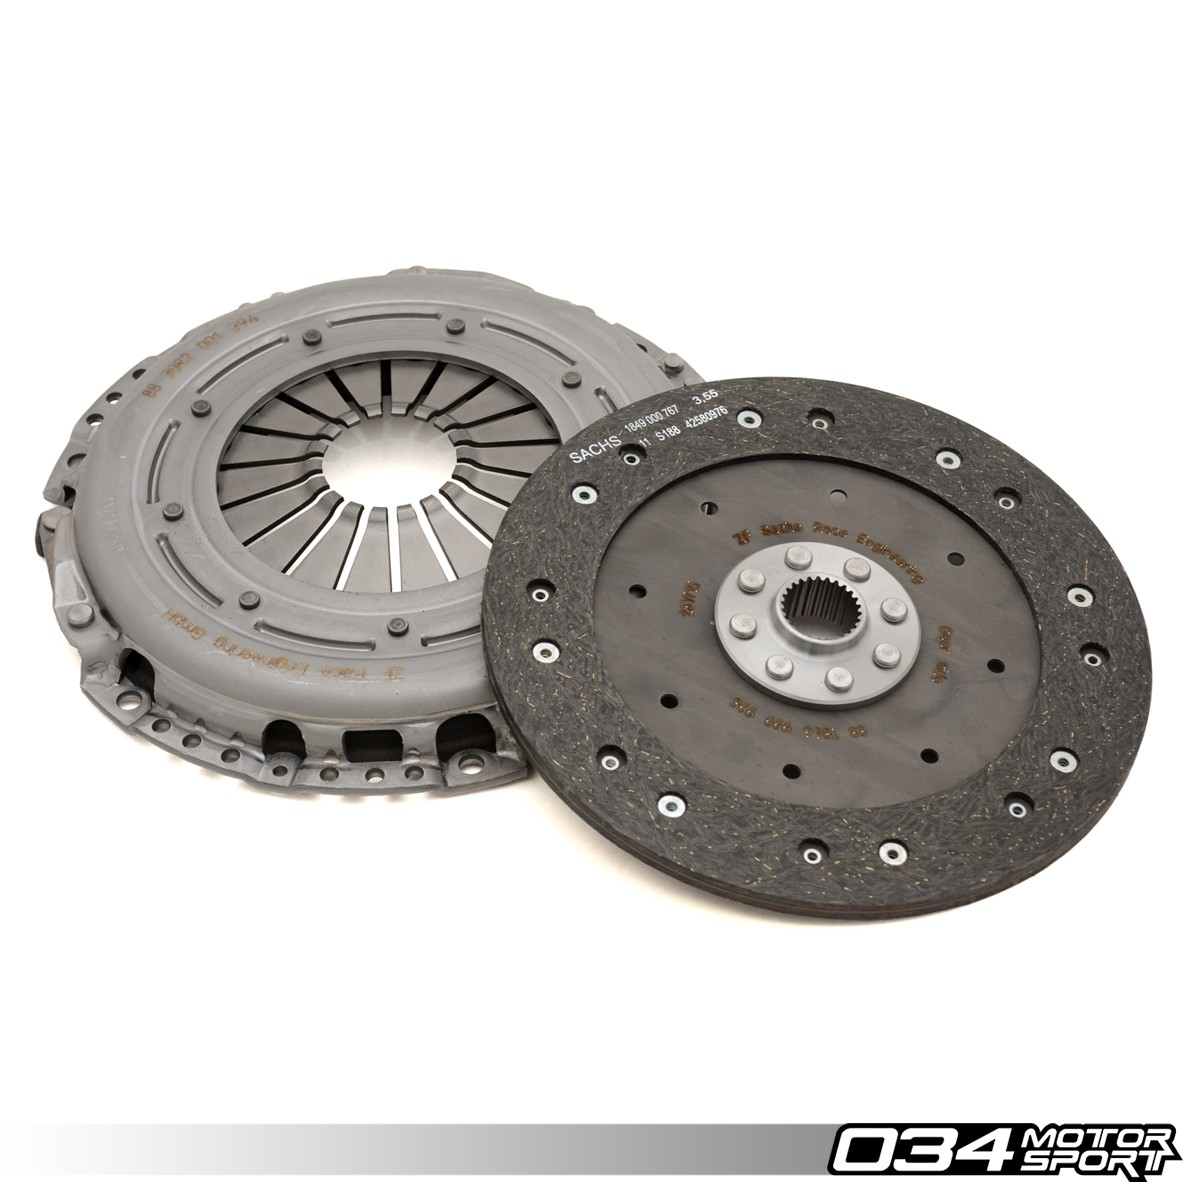 Sachs Performance Audi TT RS 2.5 TFSI Clutch Kit with Organic Disc & Upgraded Pressure Plate | 034-502-0015